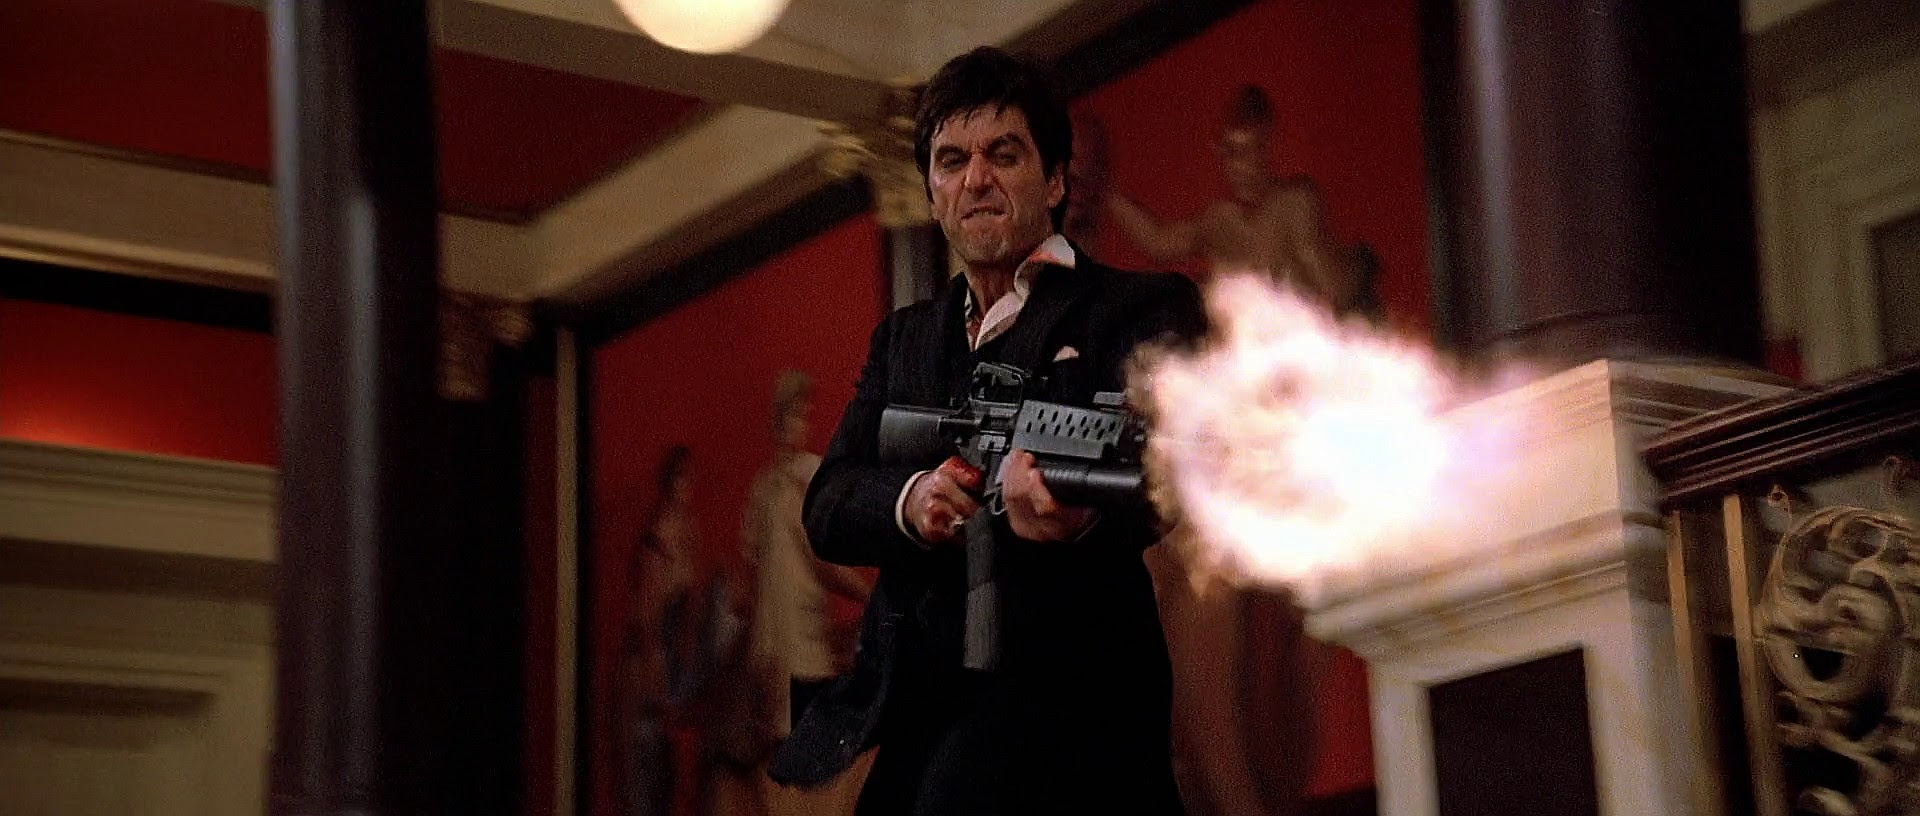 Whats The Appeal Of Scarface Page 2 Ar15com